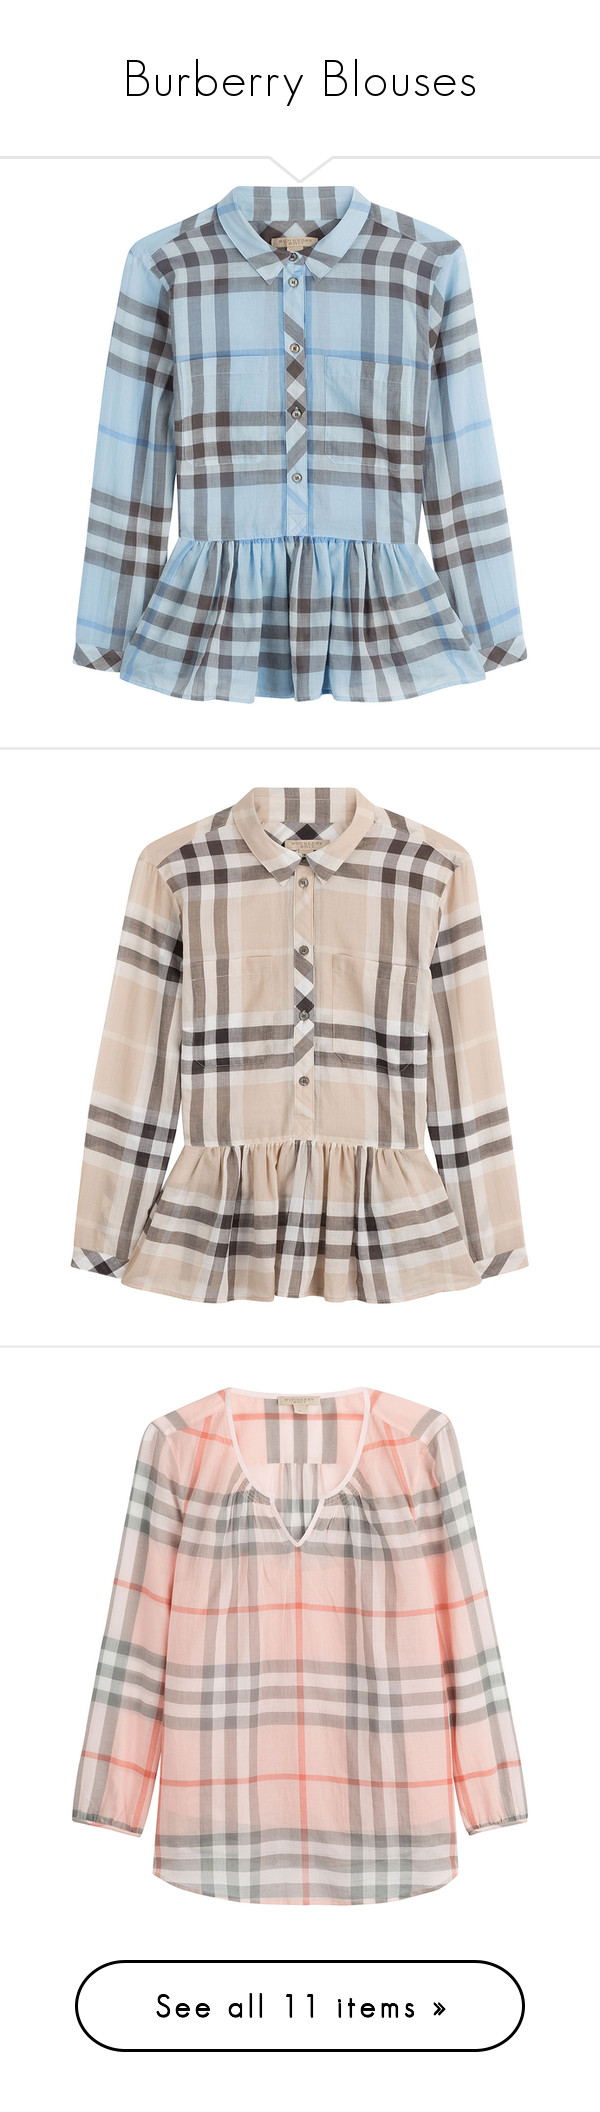 """Burberry Blouses"" by chathurika-gamage ❤ liked on Polyvore featuring tops, blouses, blue, burberry, blue peplum top, blue blouse, slimming tops, button front tops, multicolor and button front blouse"